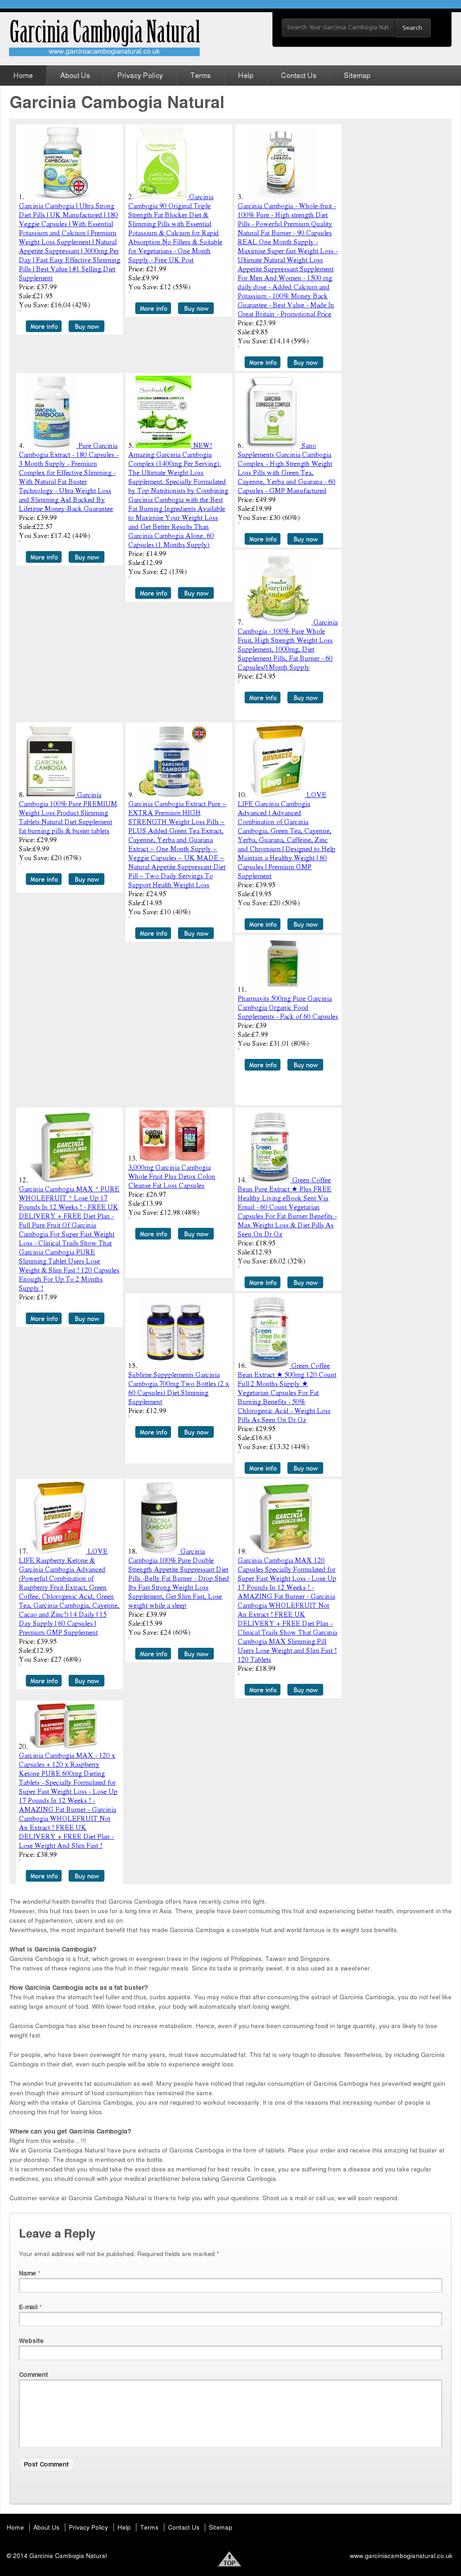 Garcinia Cambogia Natural Competitors, Revenue and Employees